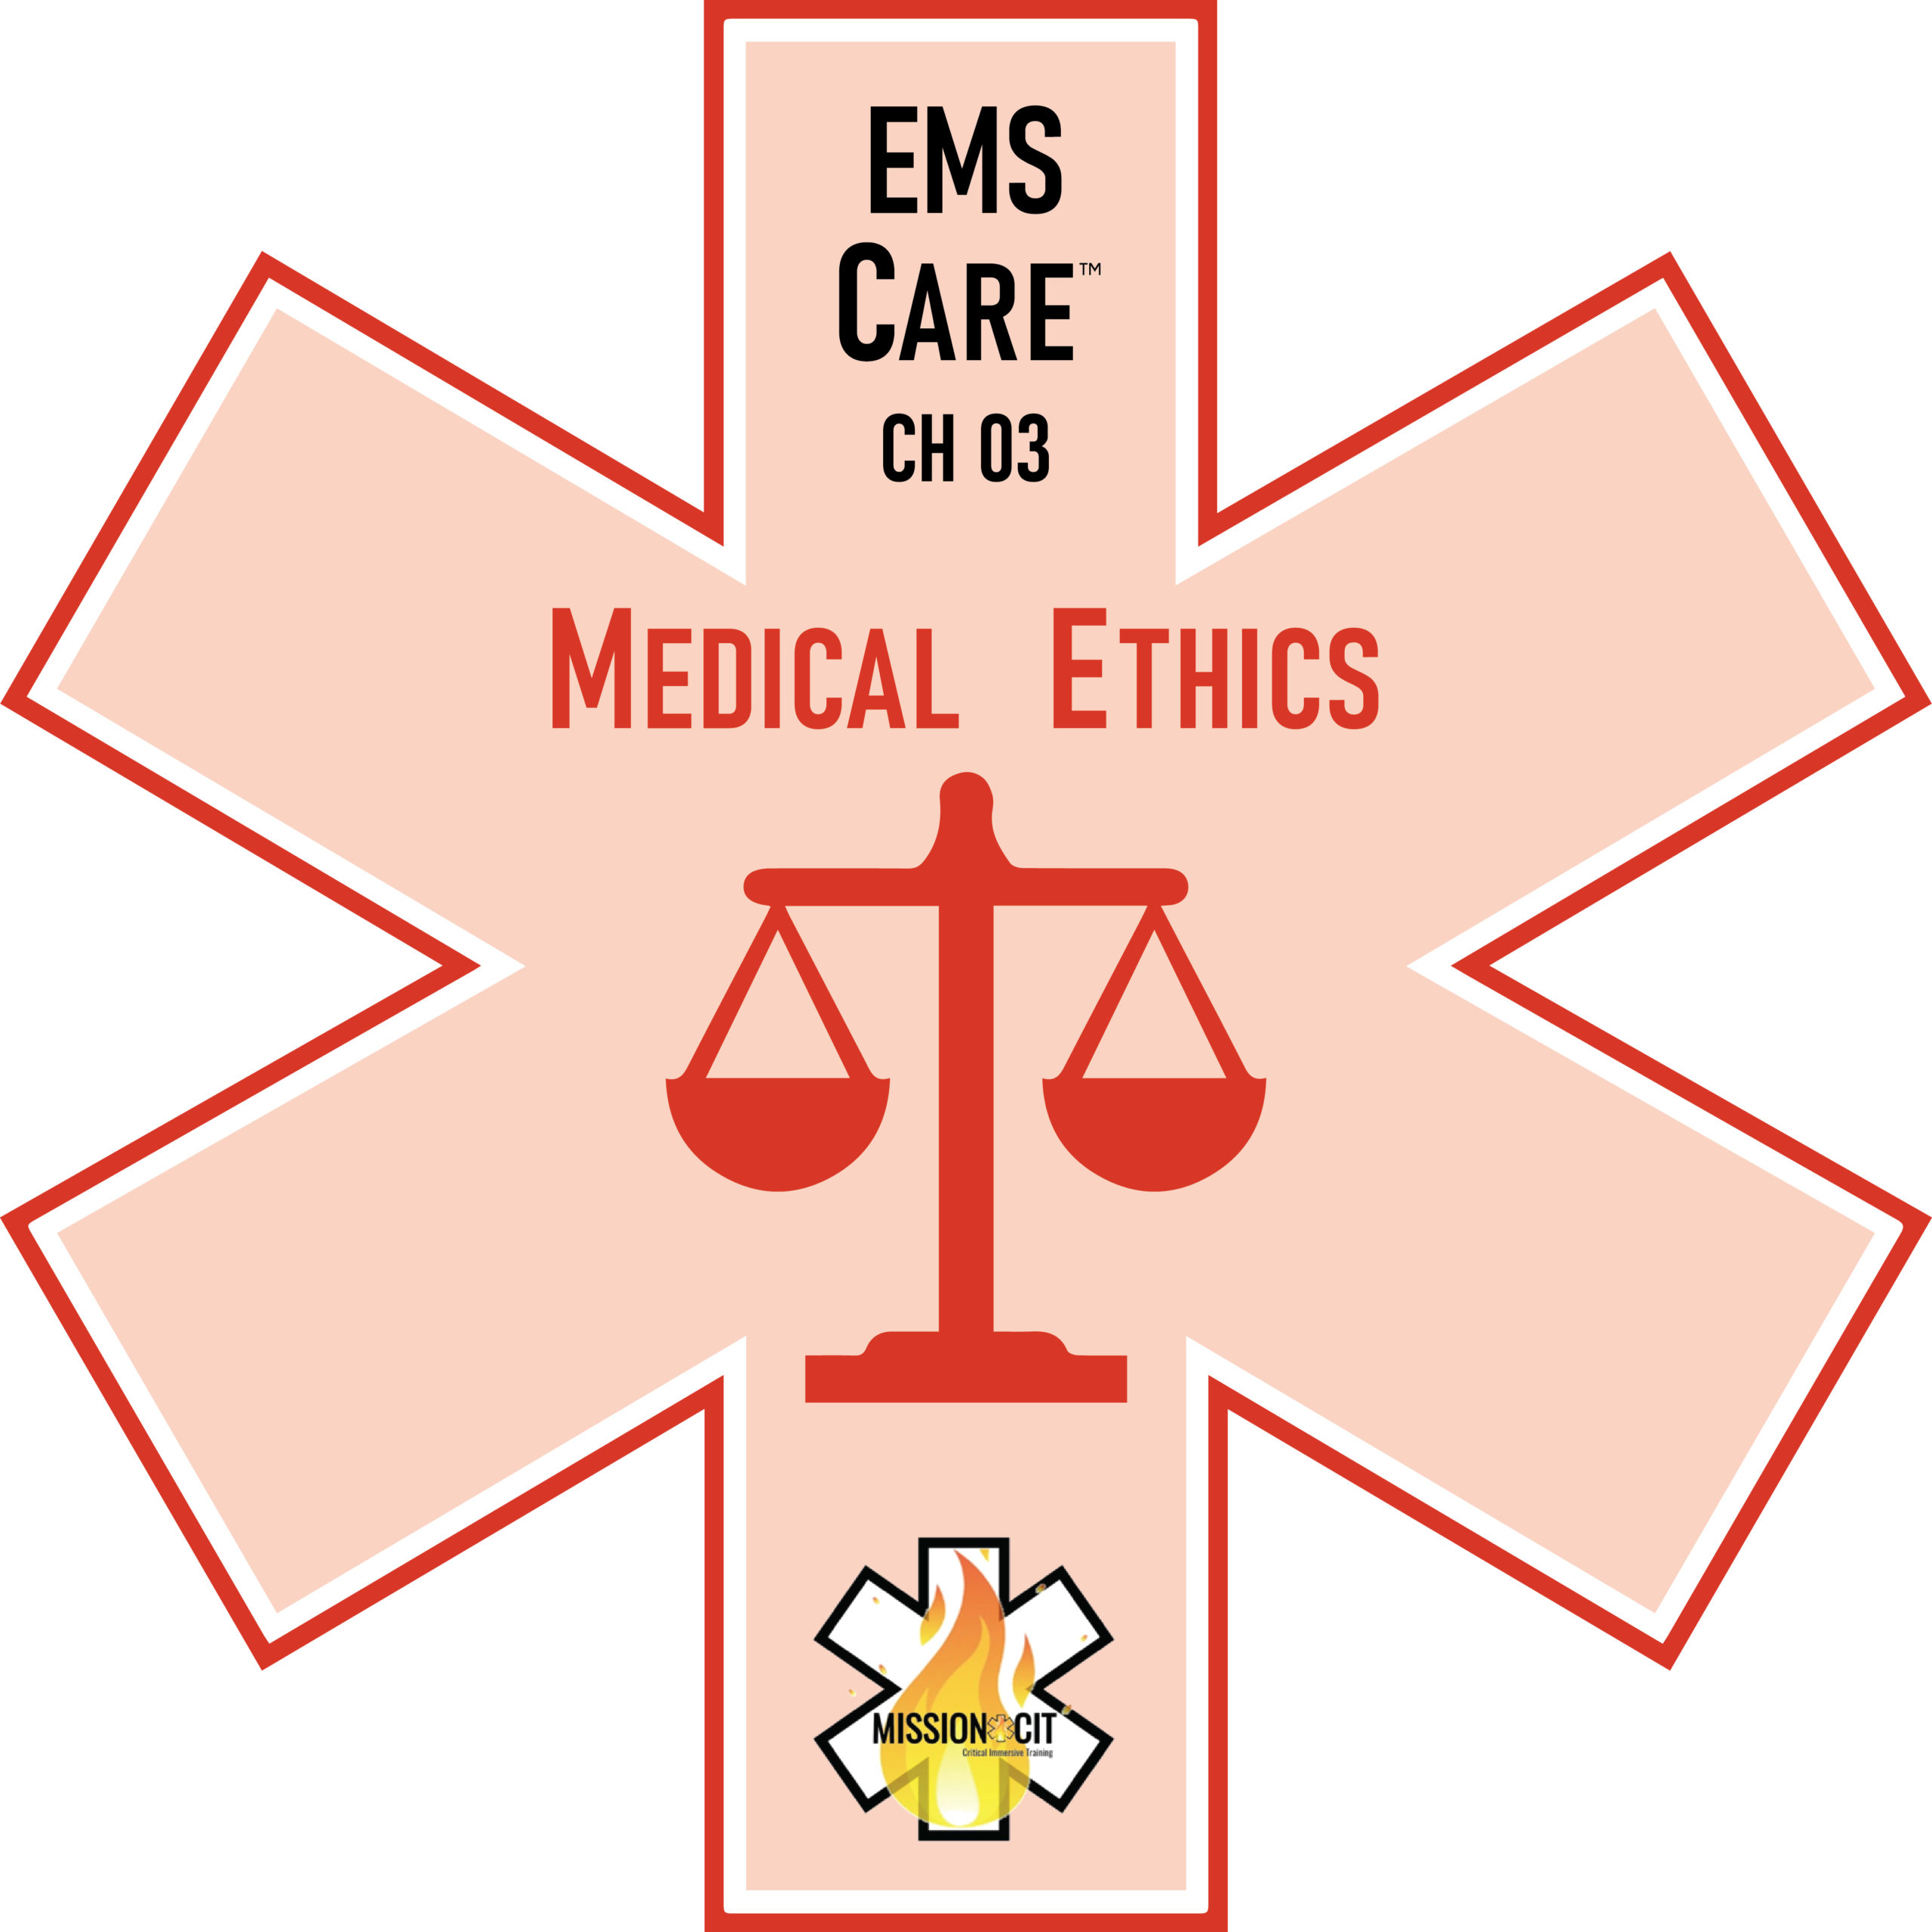 EMS Care Chapter 3 | Medical Ethics for Prehospital Care | Scope of Practice | AMA Code of Ethics | EMT Scope of Practice